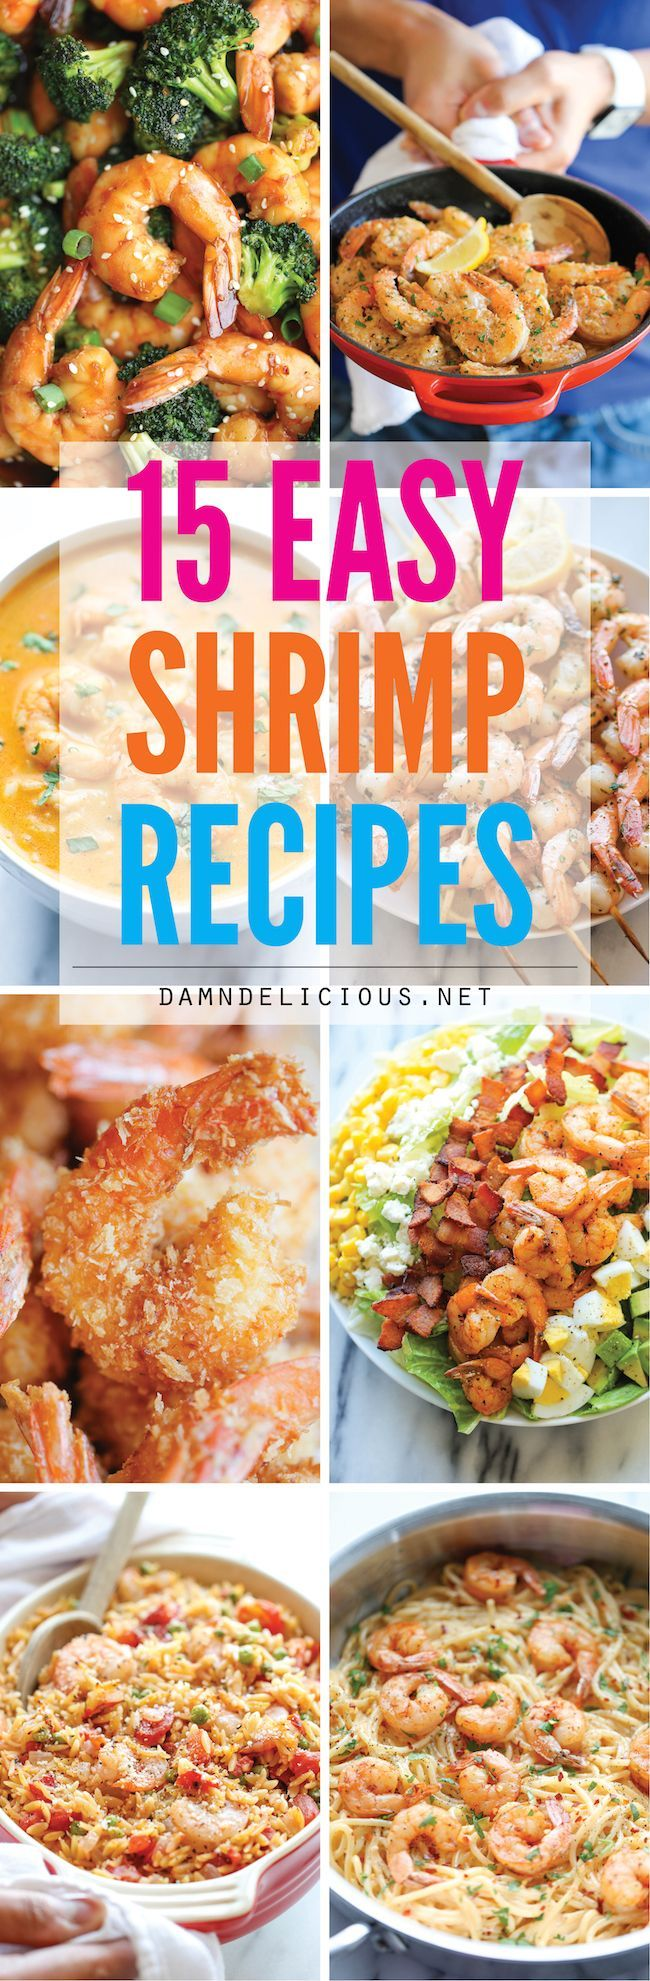 15 Easy Shrimp Recipes - Quick and easy shrimp recipes for any night of the week. Best of all, shrimp is high in protein and low in calories! http://samscutlerydepot.com/